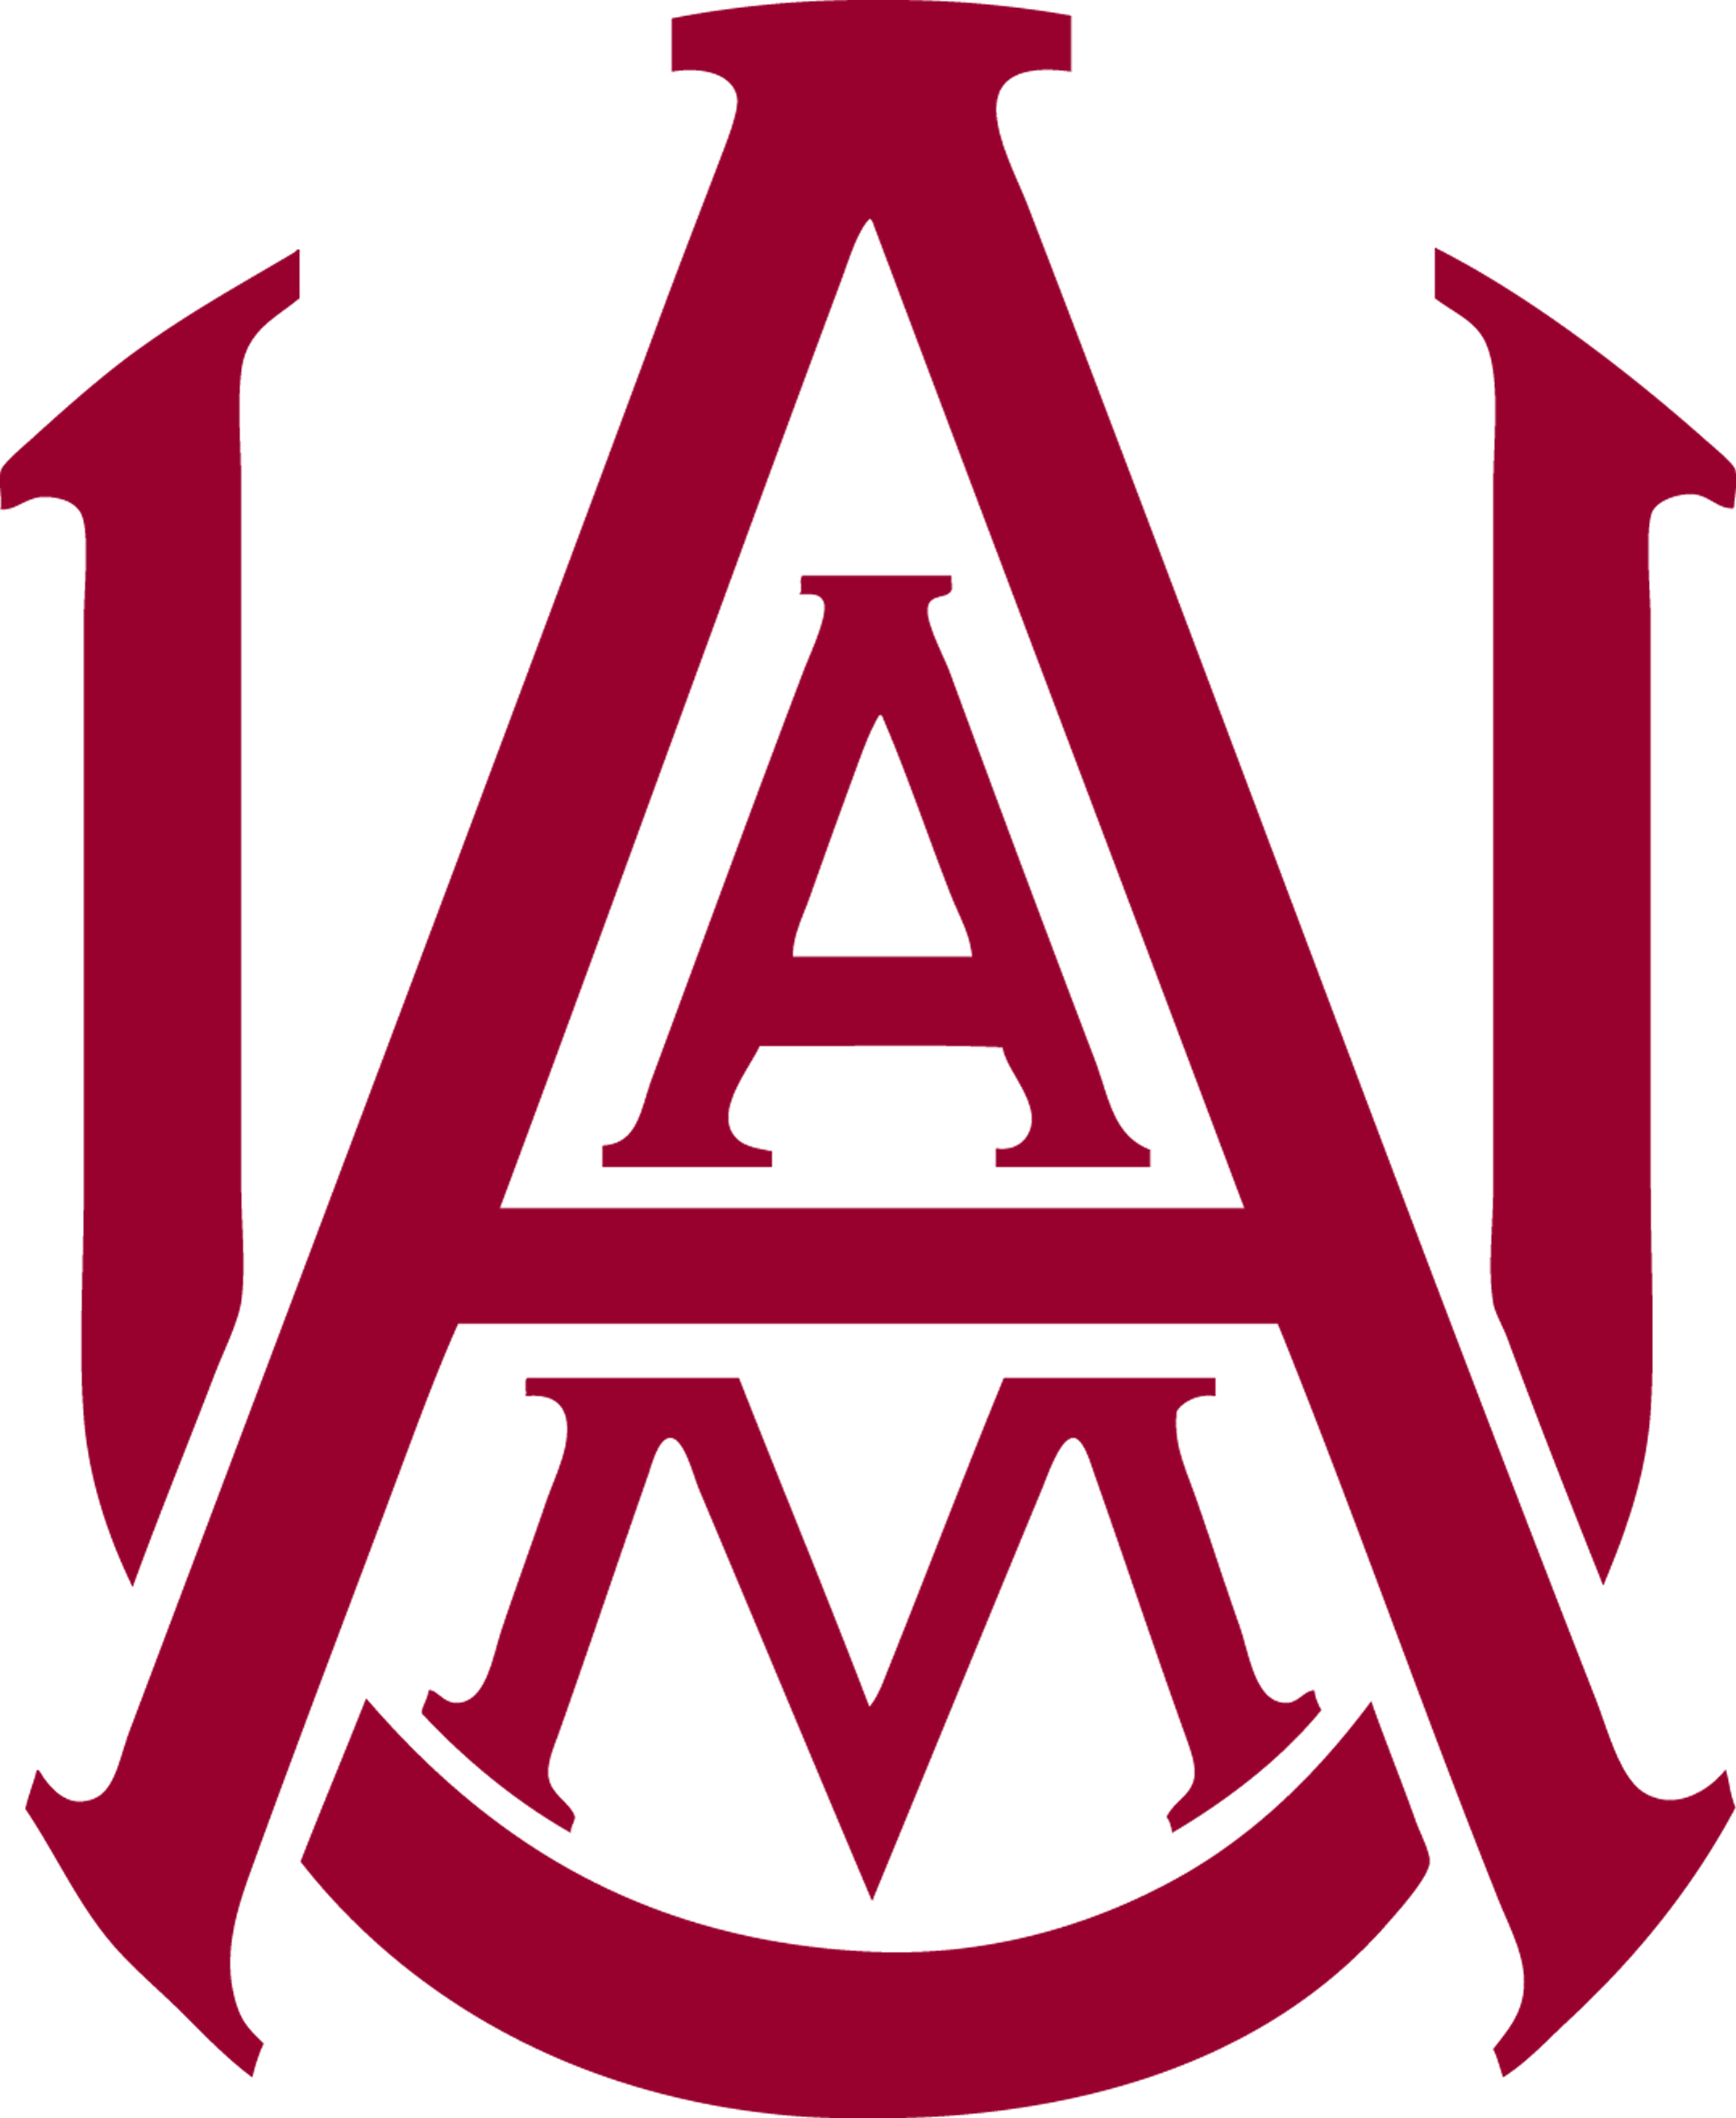 Alabama clipart football graphic free download Documents graphic free download